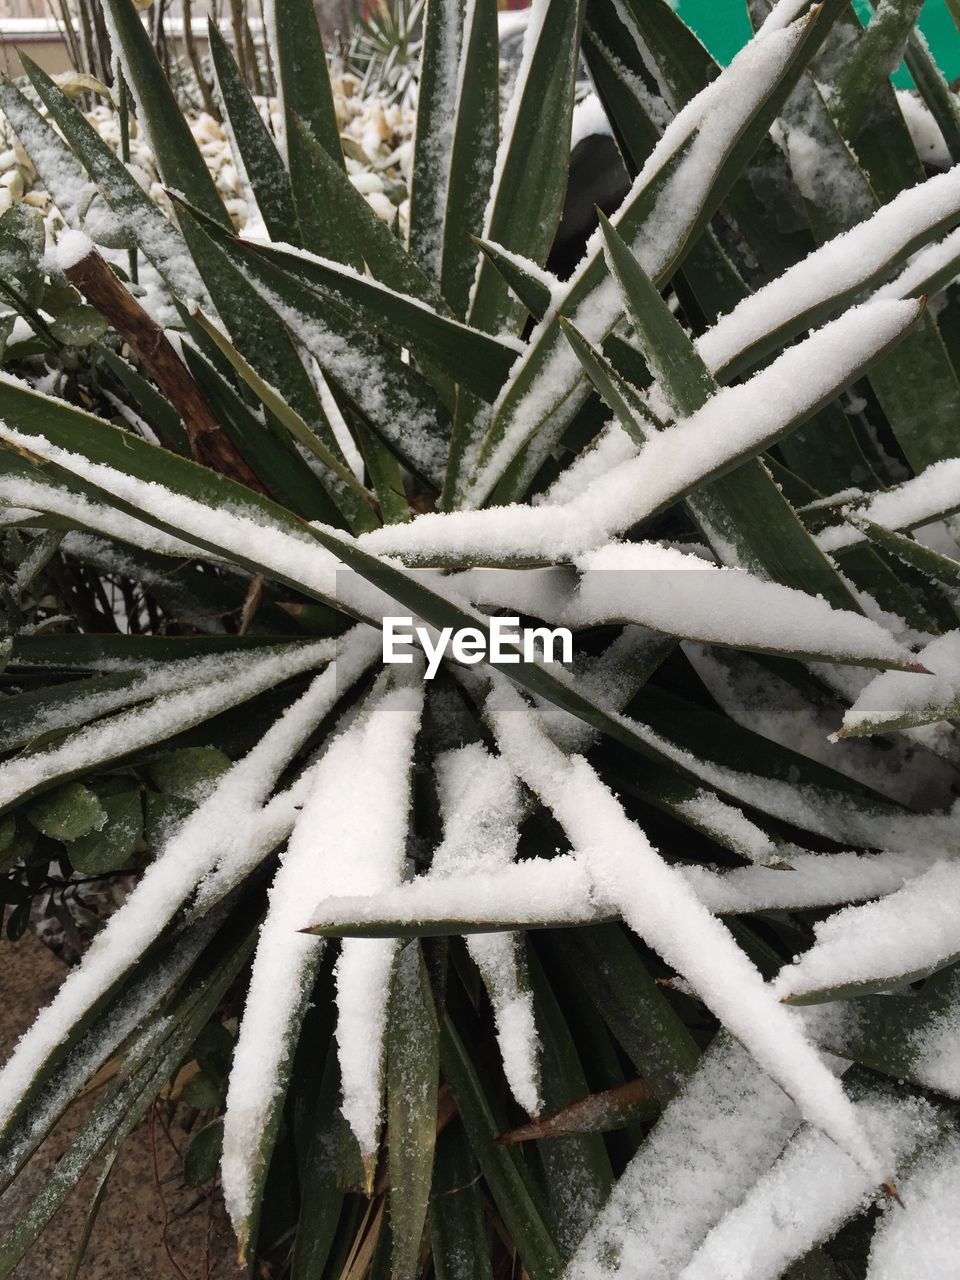 plant, outdoors, close-up, day, growth, leaf, no people, bamboo - plant, nature, cold temperature